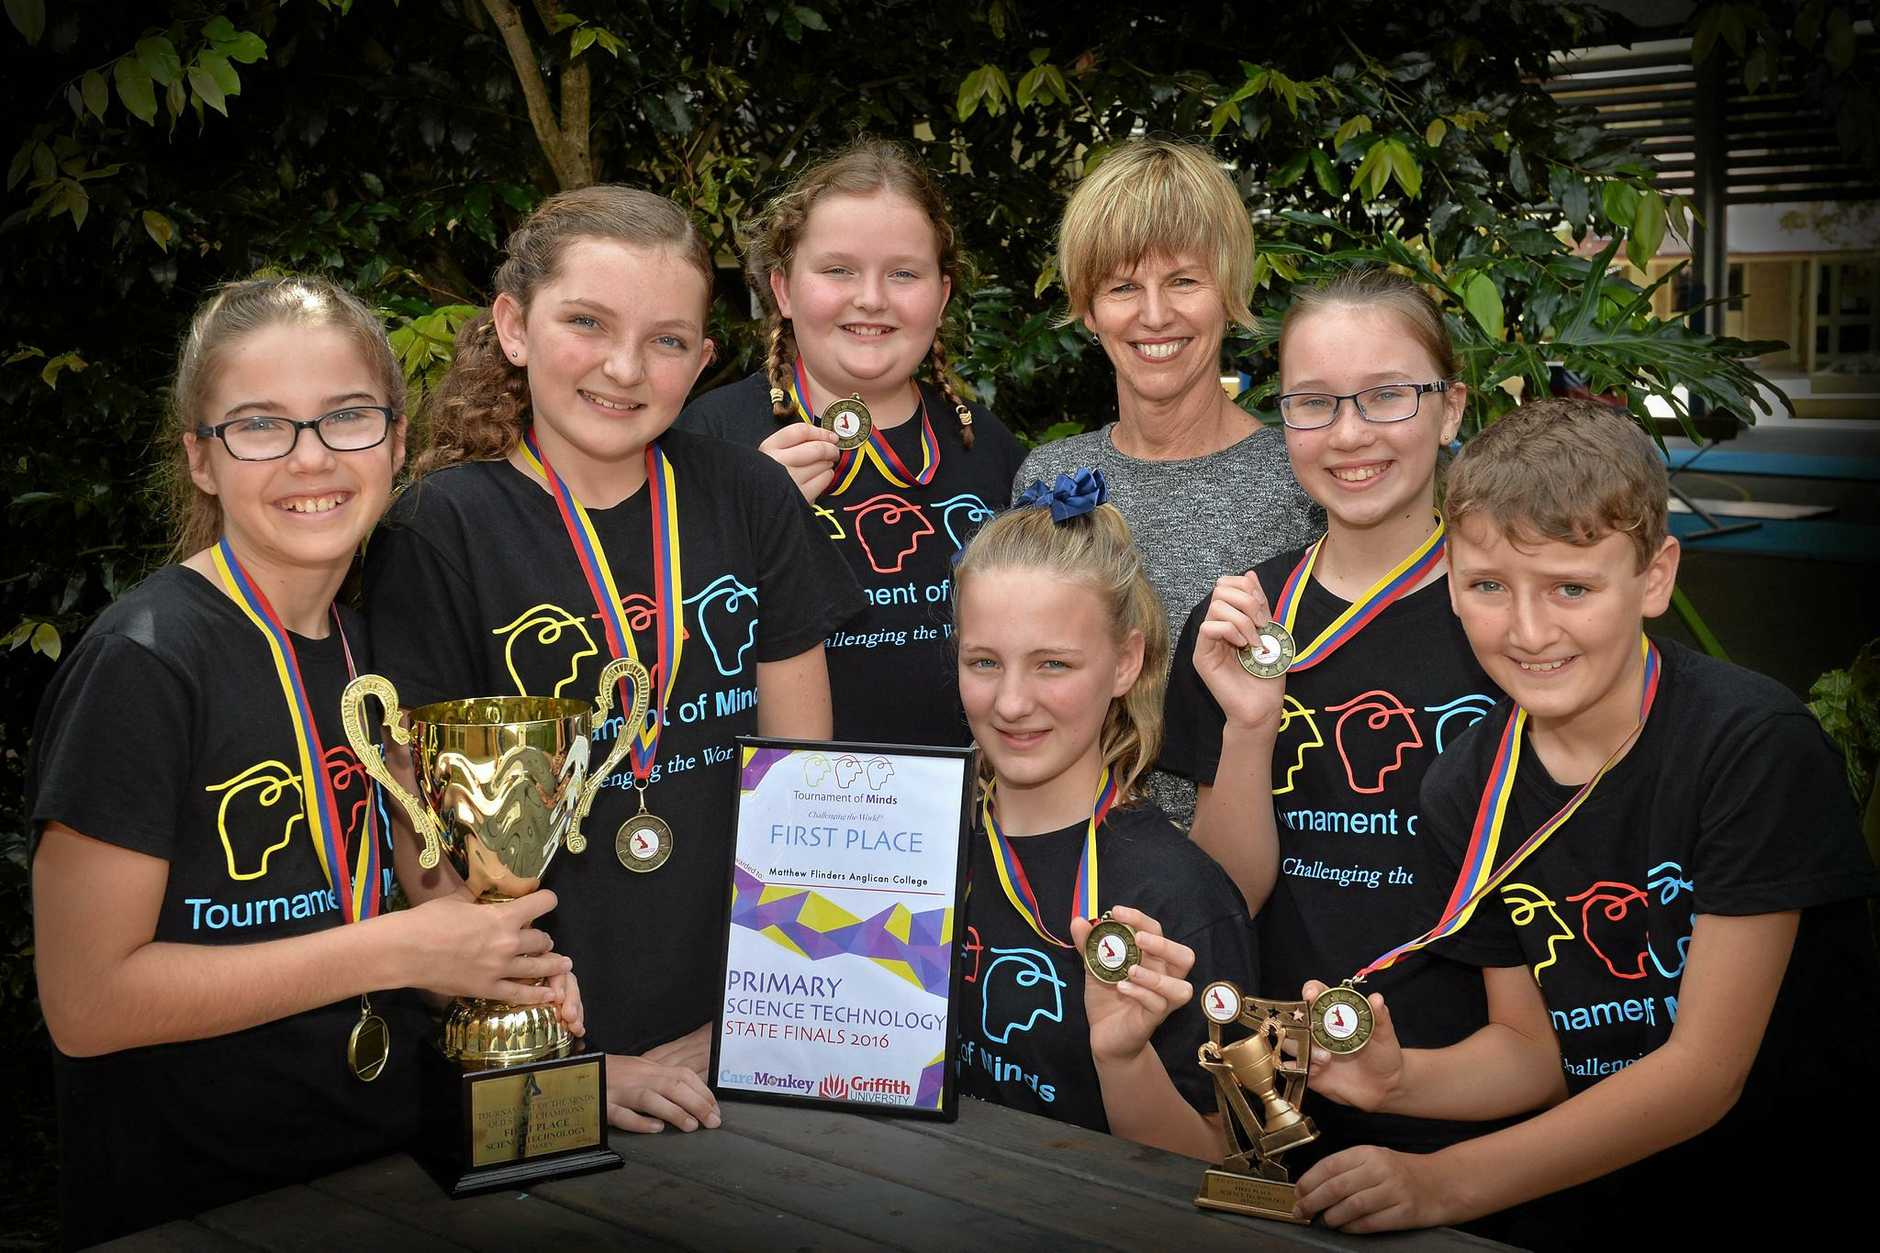 WINNERS ARE GRINNERS: The Matthew Flinders Anglican College team won their category in the state finals of the Tournament of Minds.